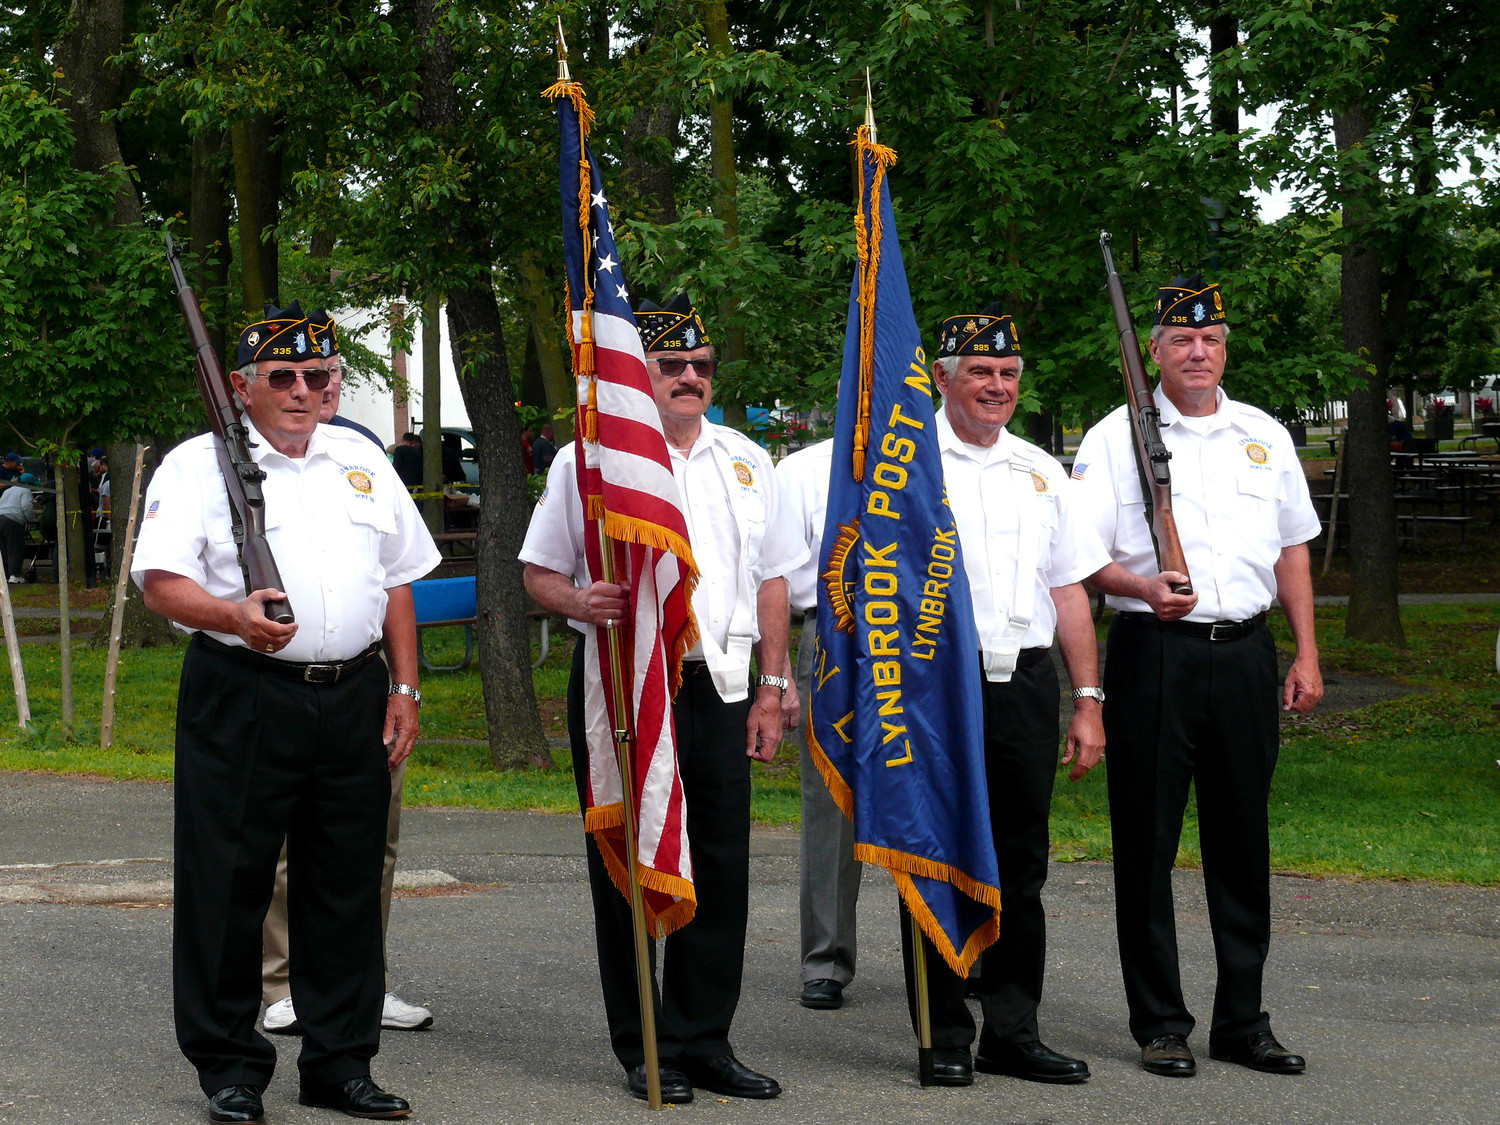 The Lynbrook VFW post personnel prepared to show the colors at Lynbrook's Patriots' Day last year